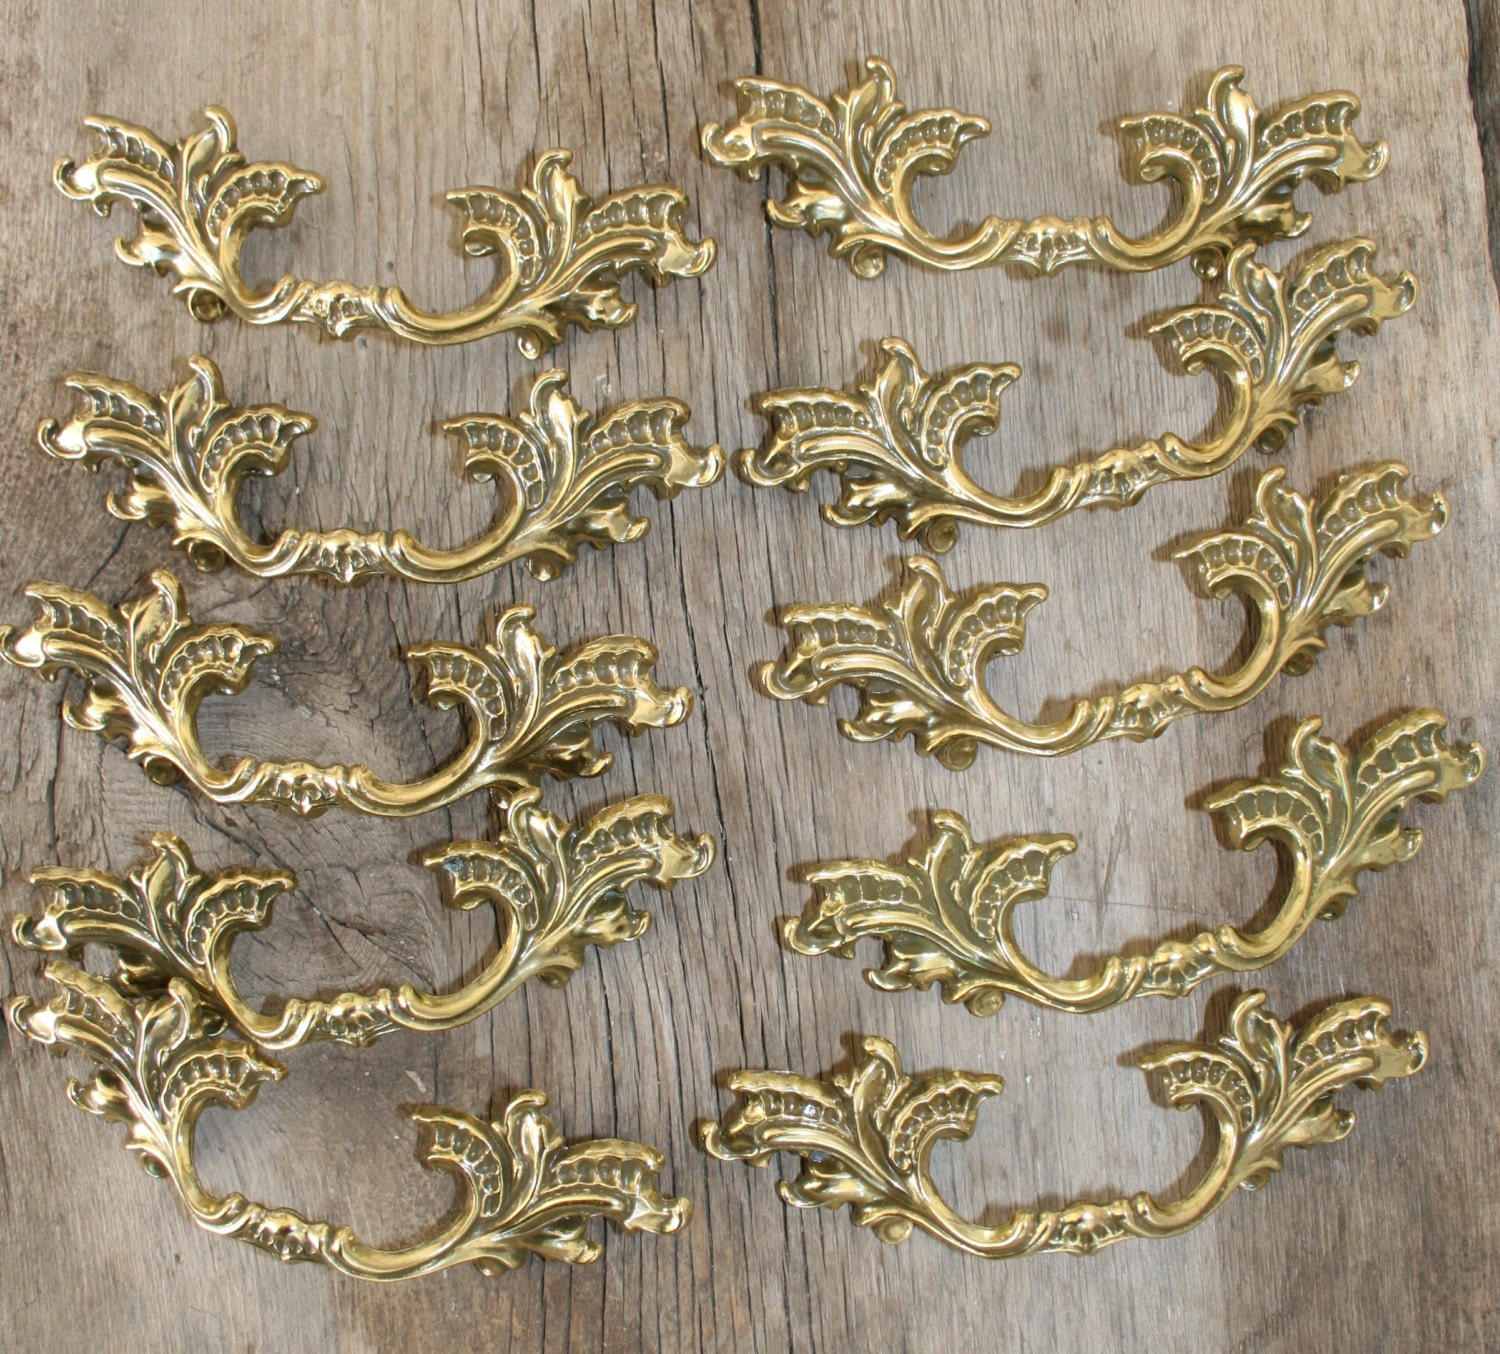 7 French Provincial Drawer Pulls/ Furniture/ Cabinet Handles